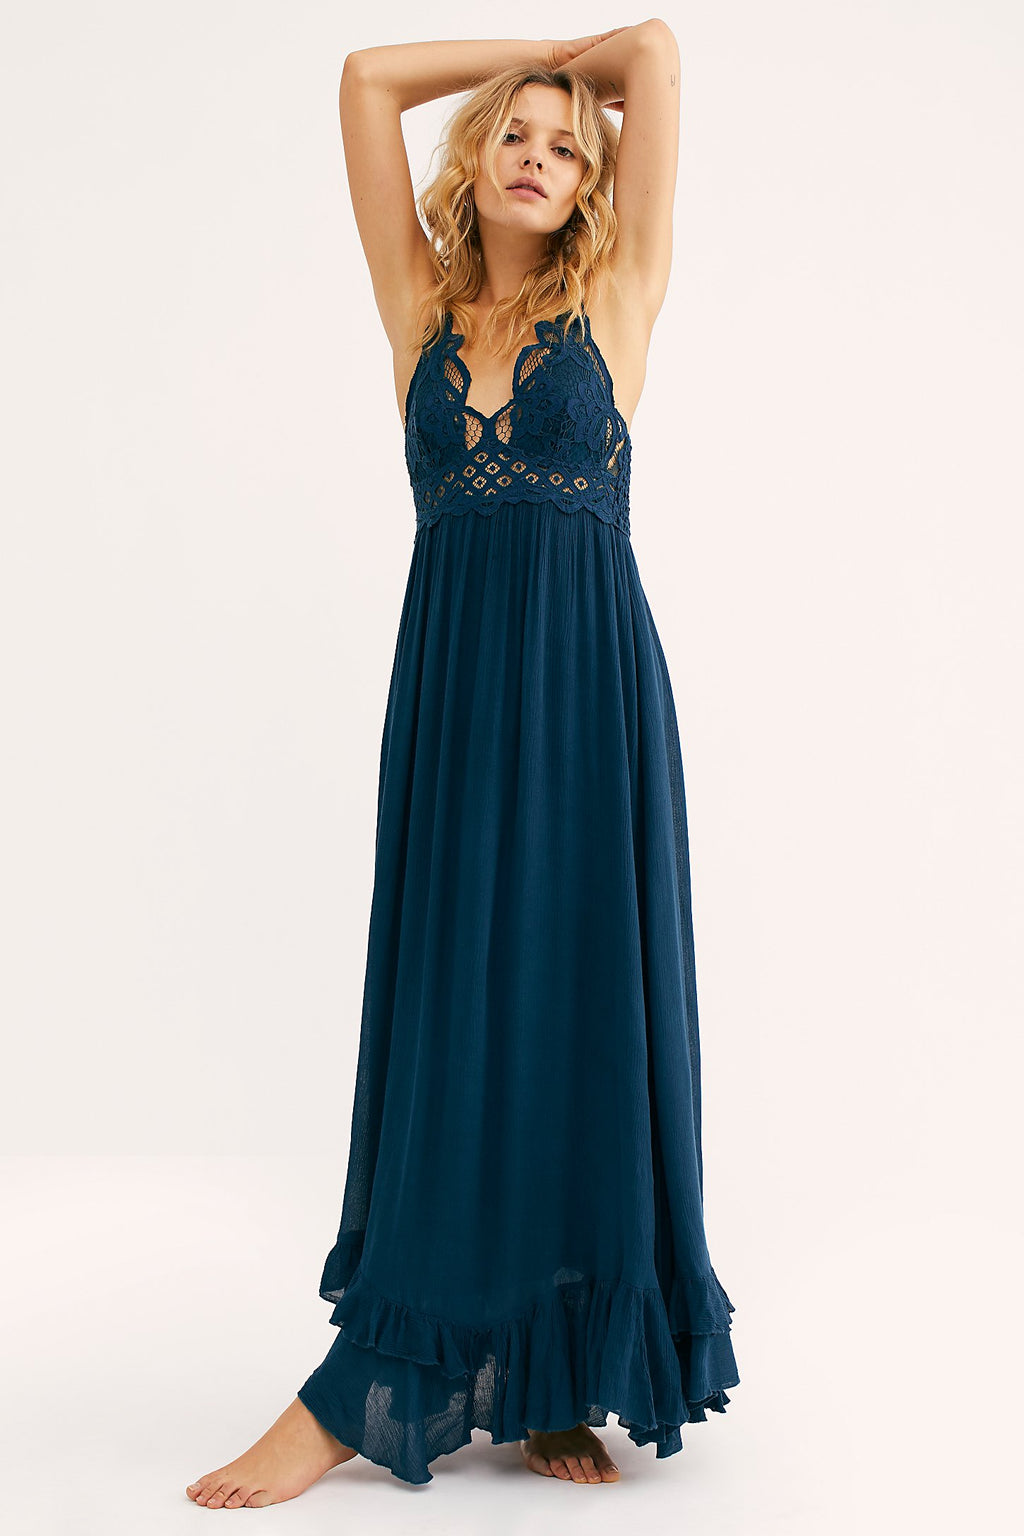 Free People Adella Maxi Dress Turquoise